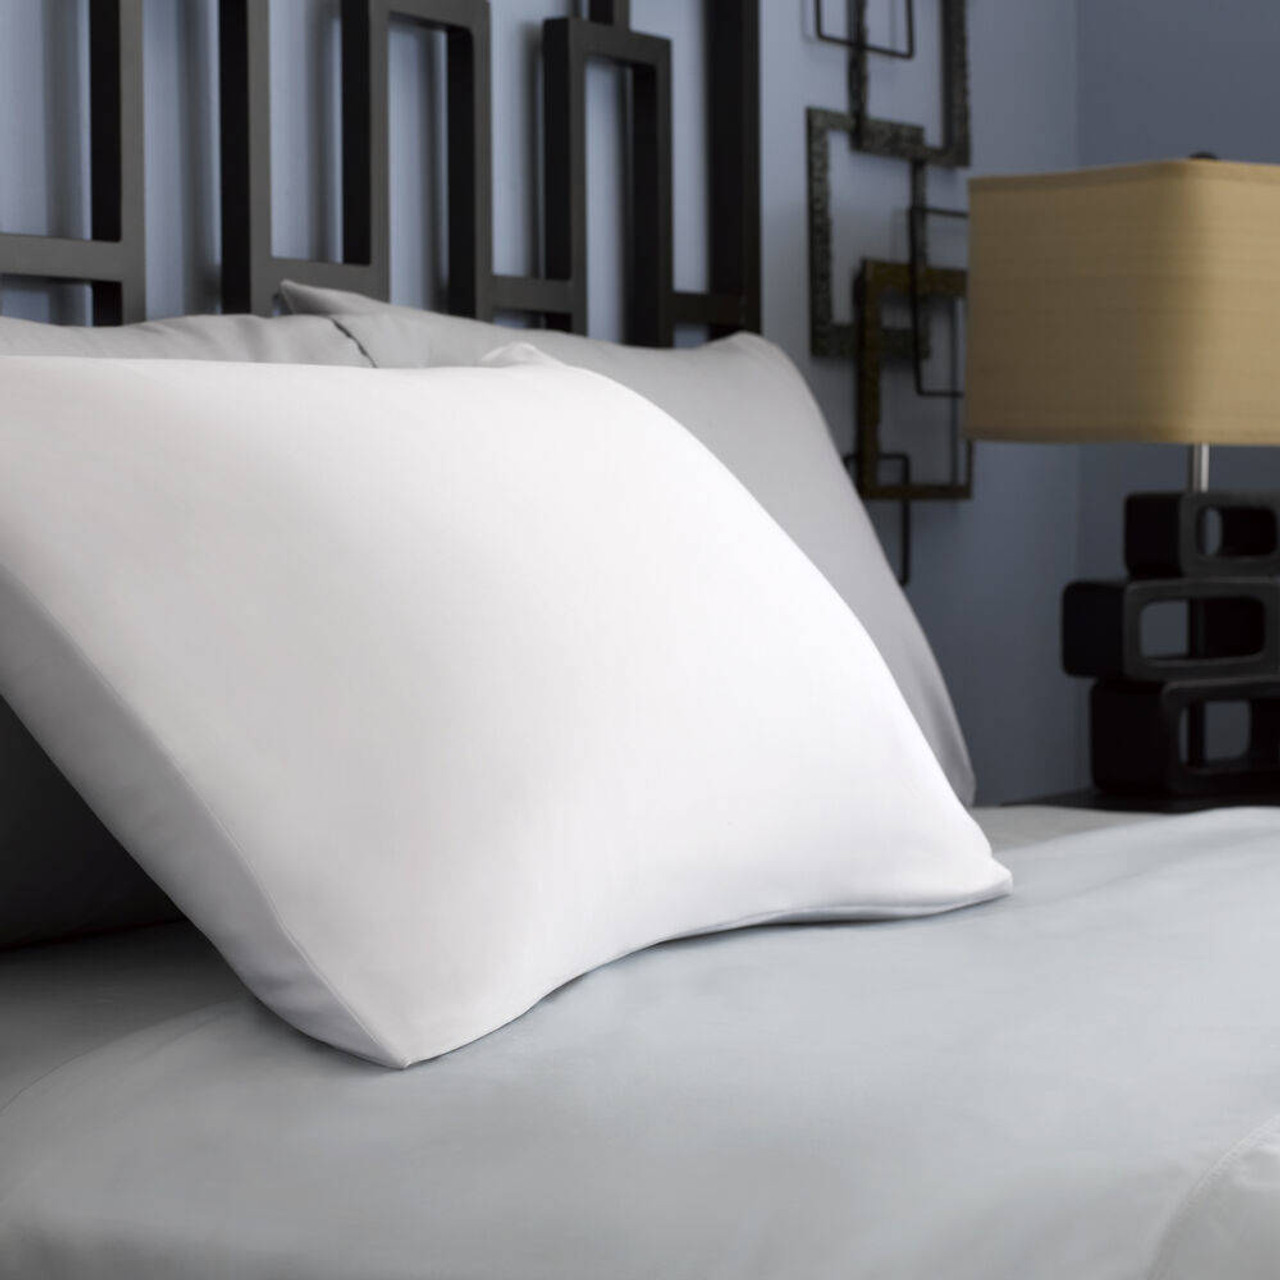 Restful Nights Restful Nights Pillows or Simple Comfort